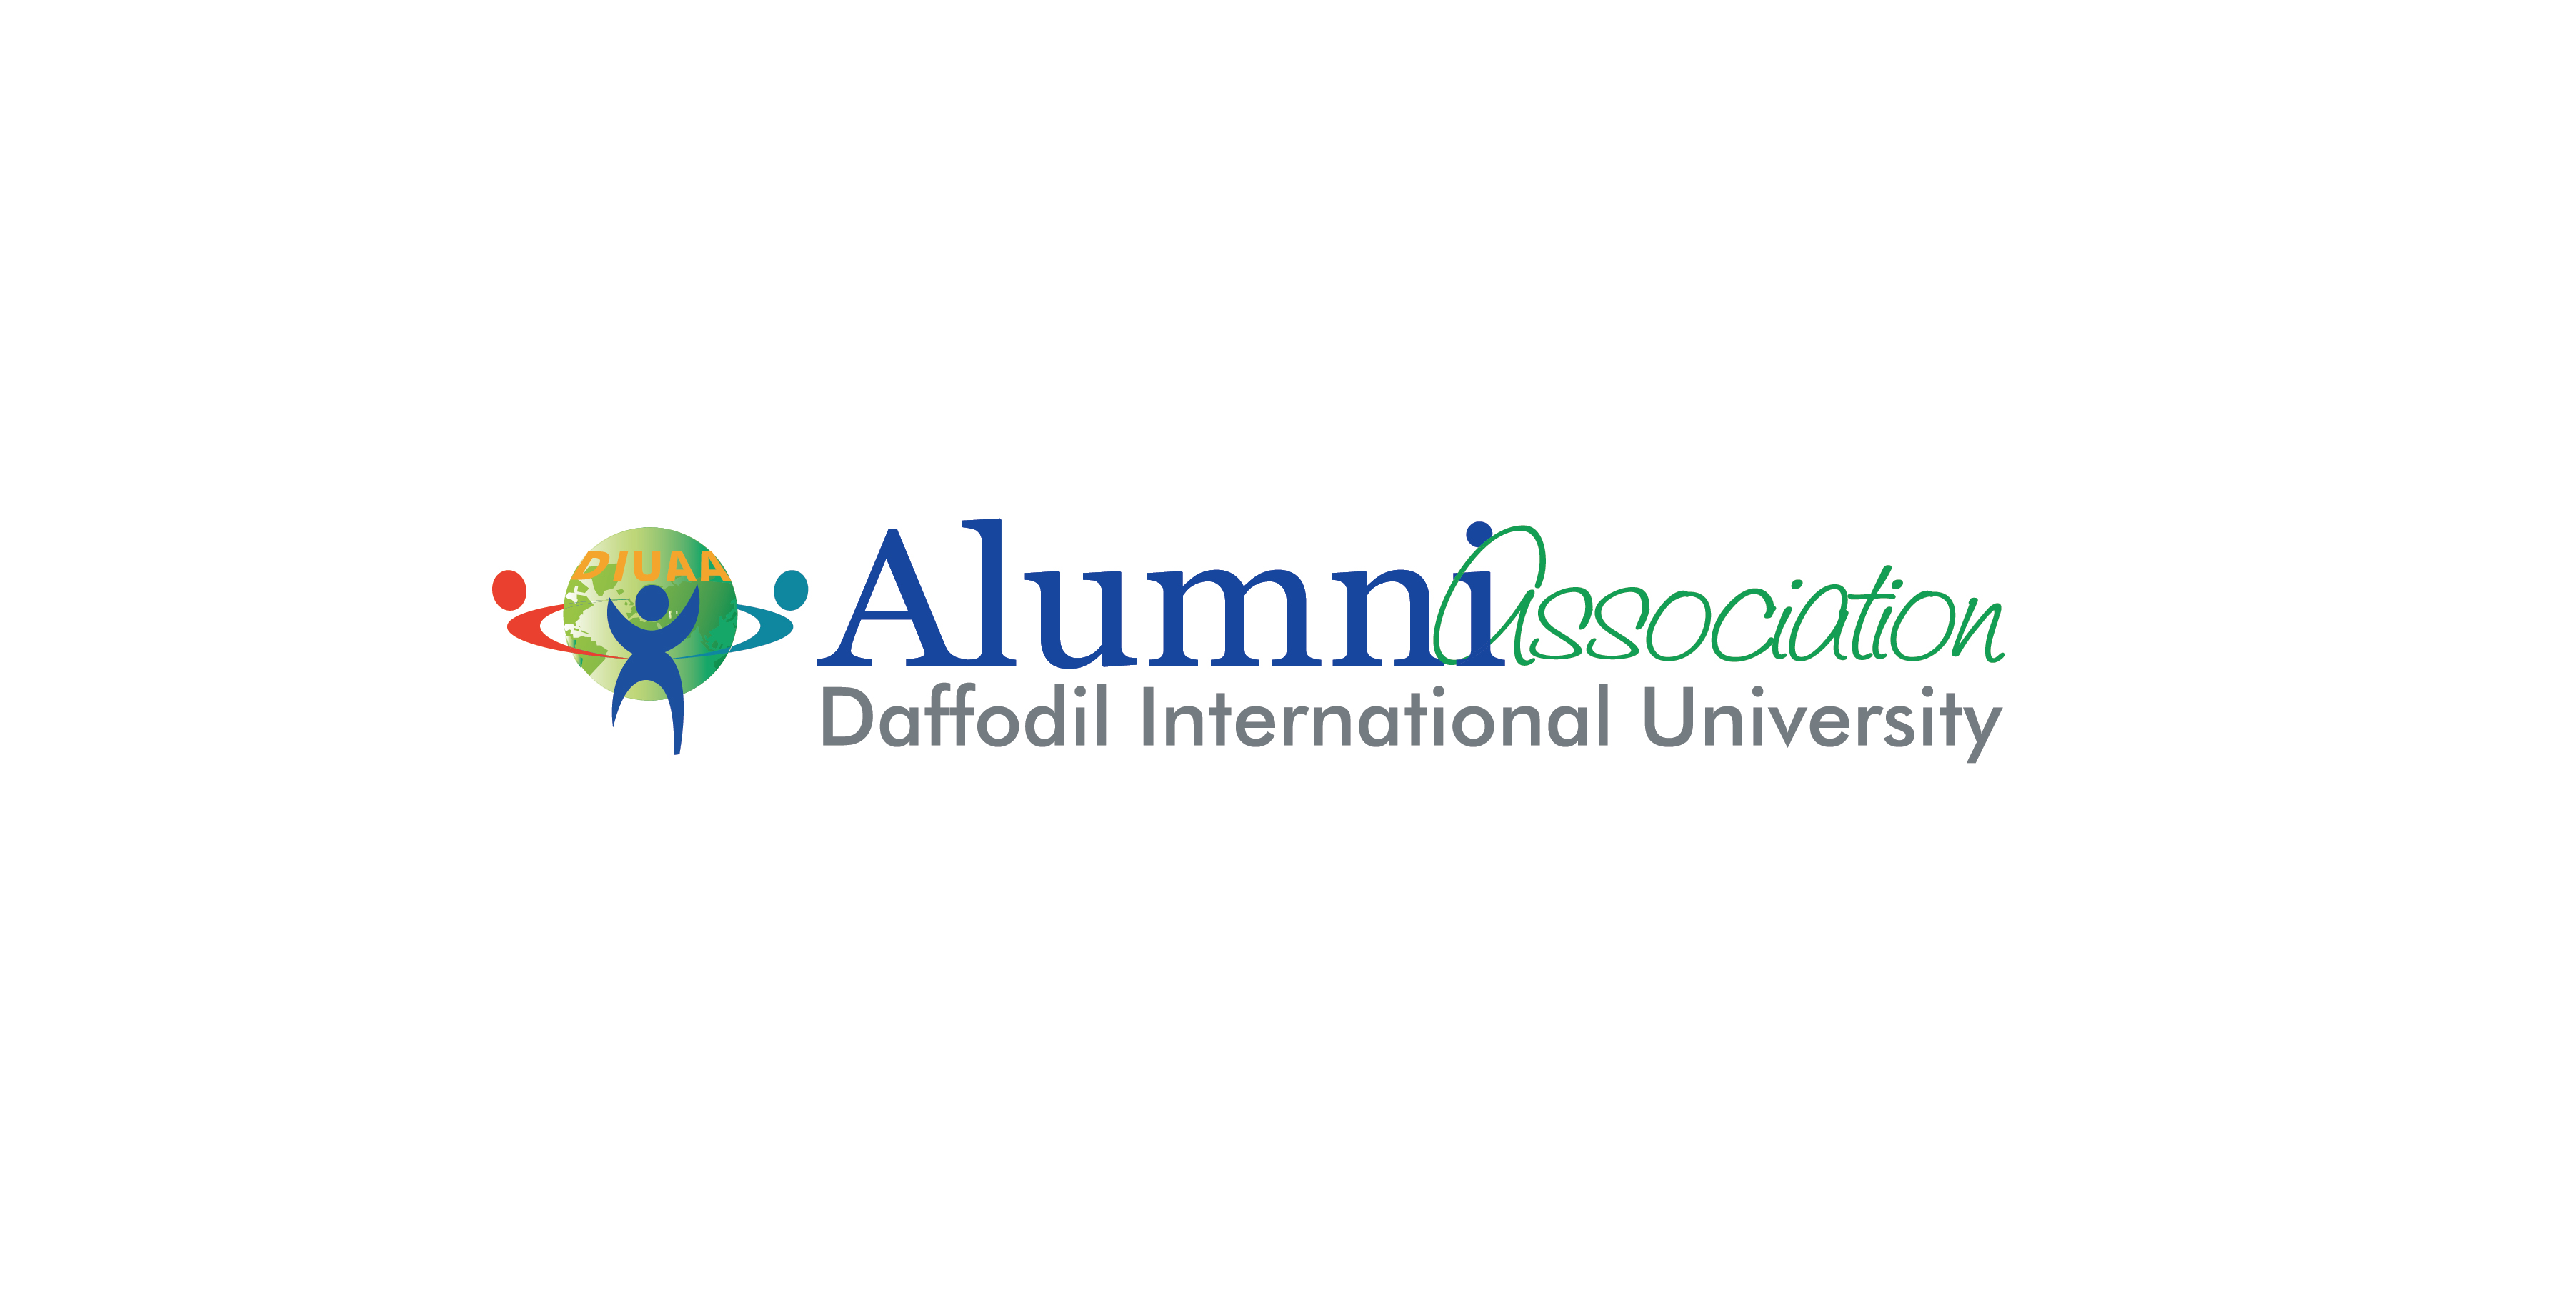 Daffodil International University Alumni Association (DIUAA)